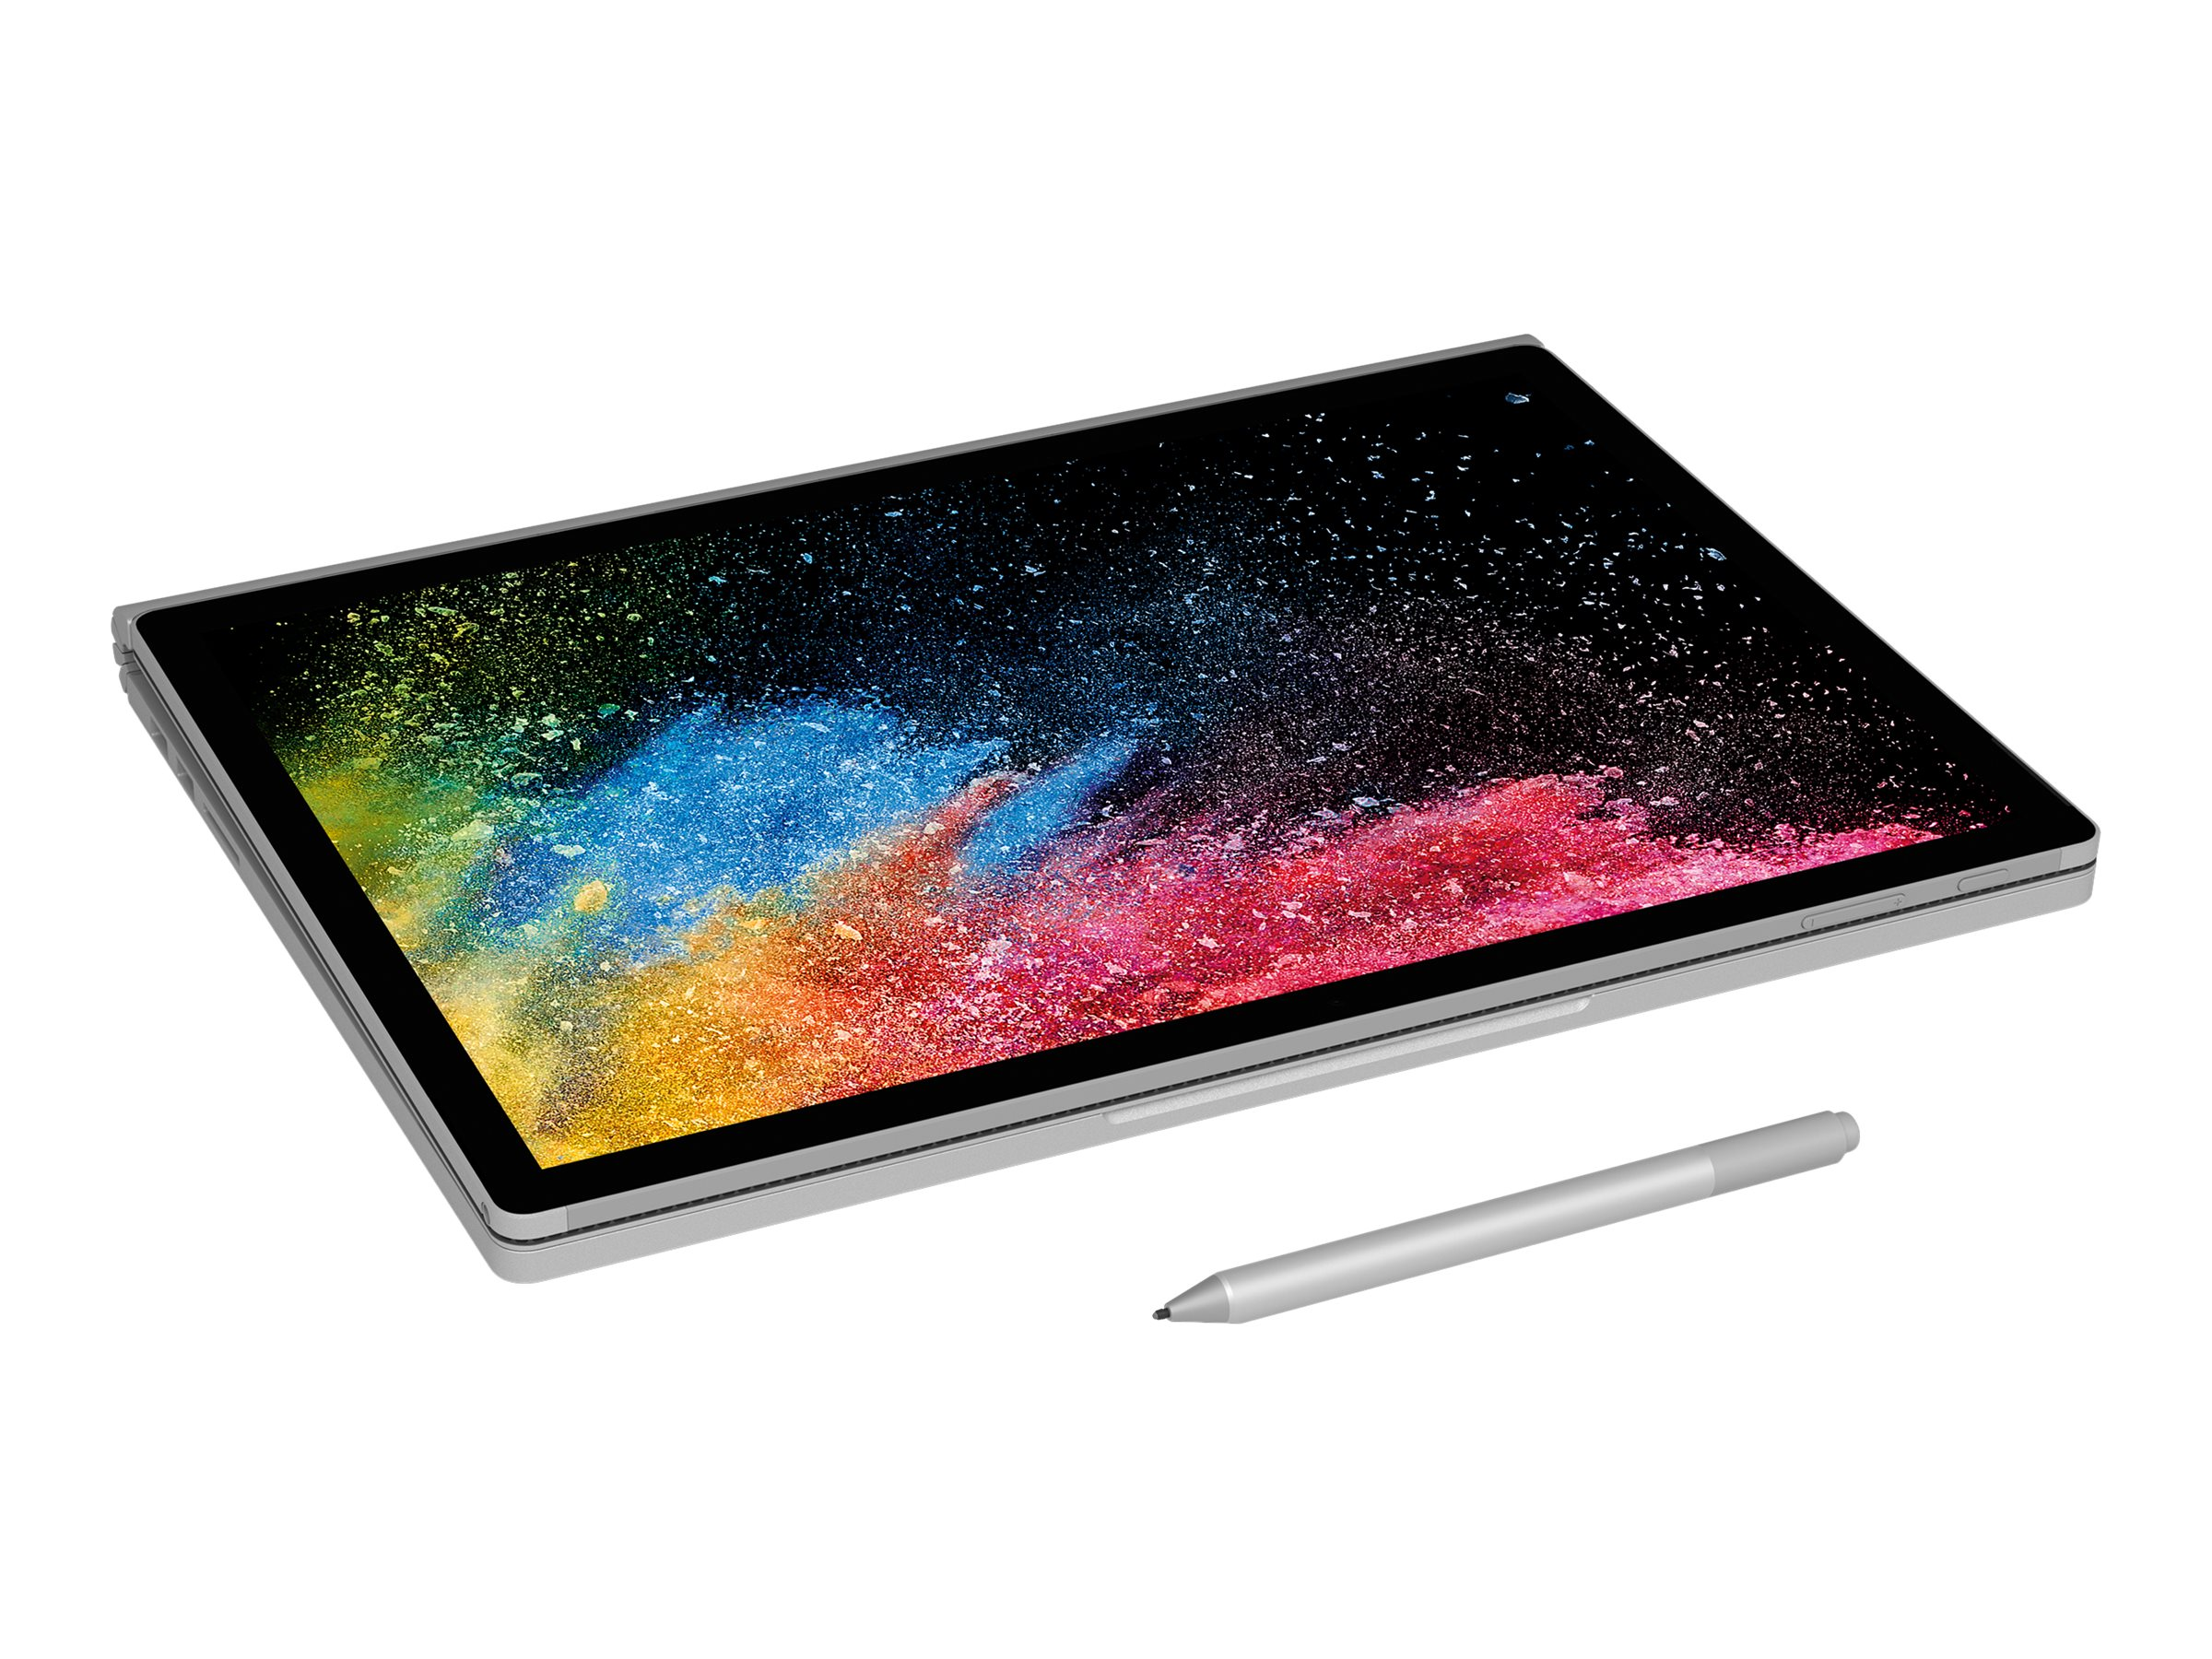 Microsoft Surface Book 2 - Tablet - mit abnehmbarer Tastatur - Core i5 7300U / 2.6 GHz - Win 10 Pro 64-Bit - 8 GB RAM